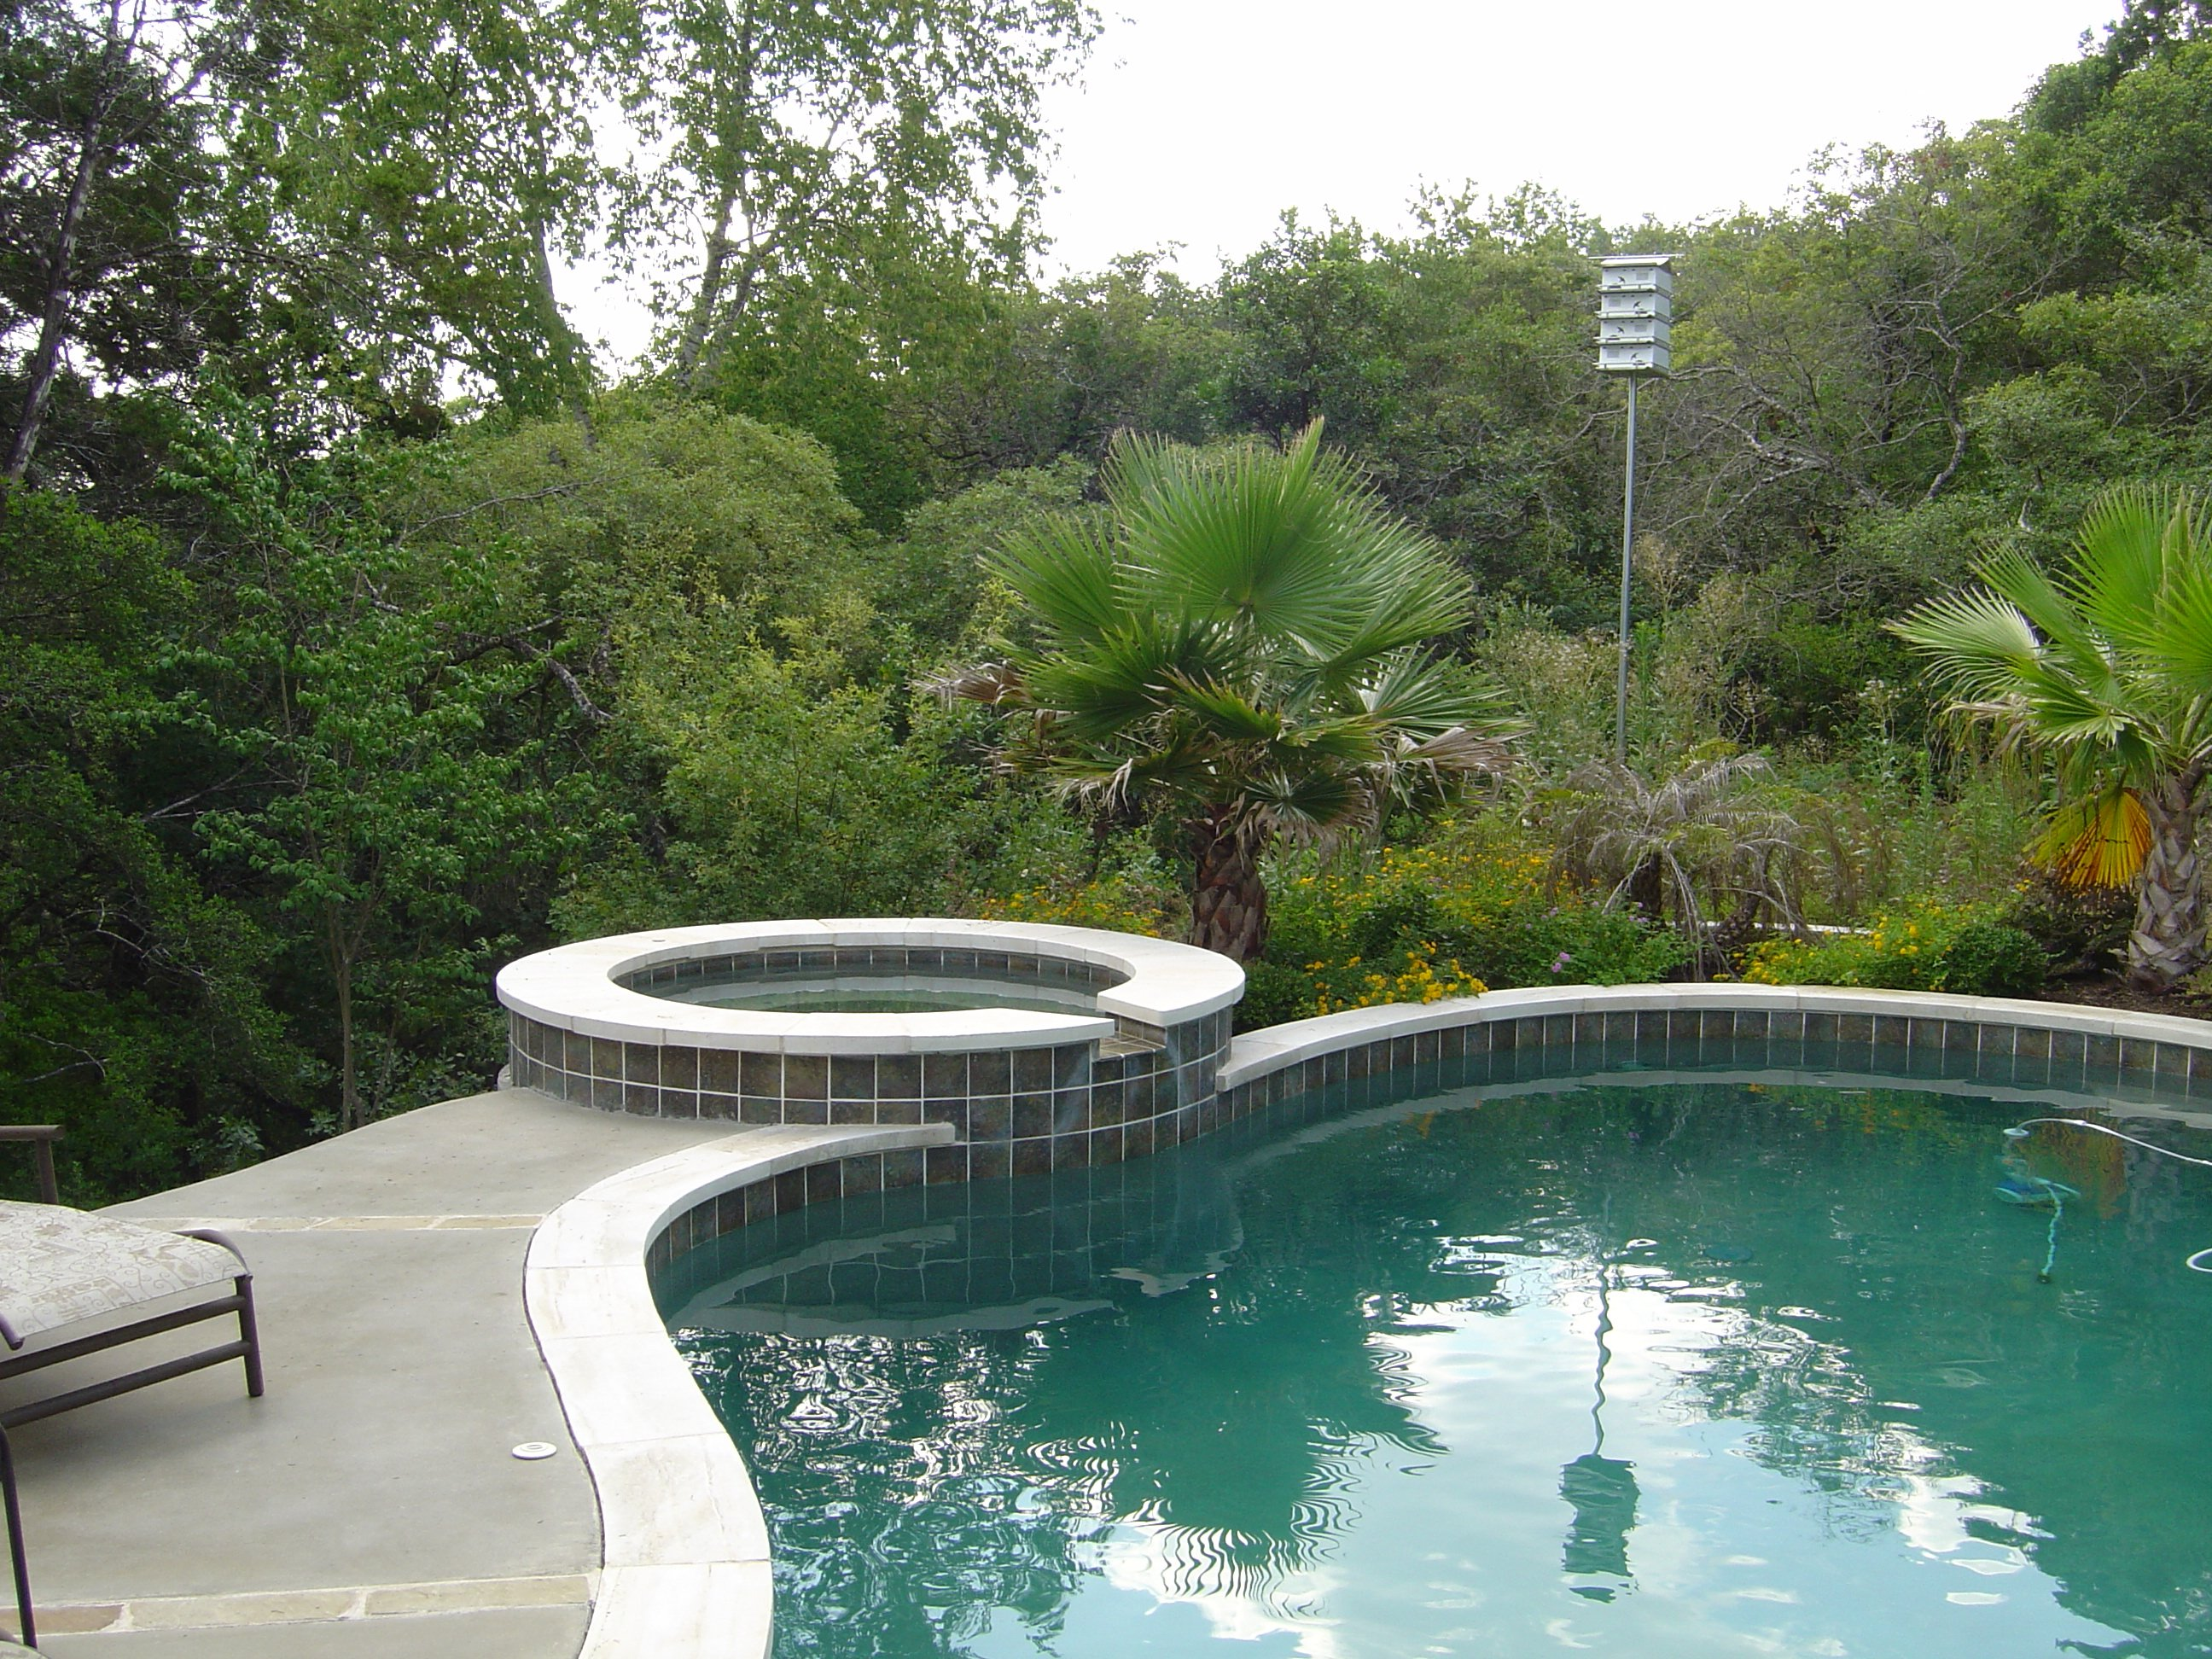 Pool with Raised Spa, Stained Concrete Deck and Black Bottom.